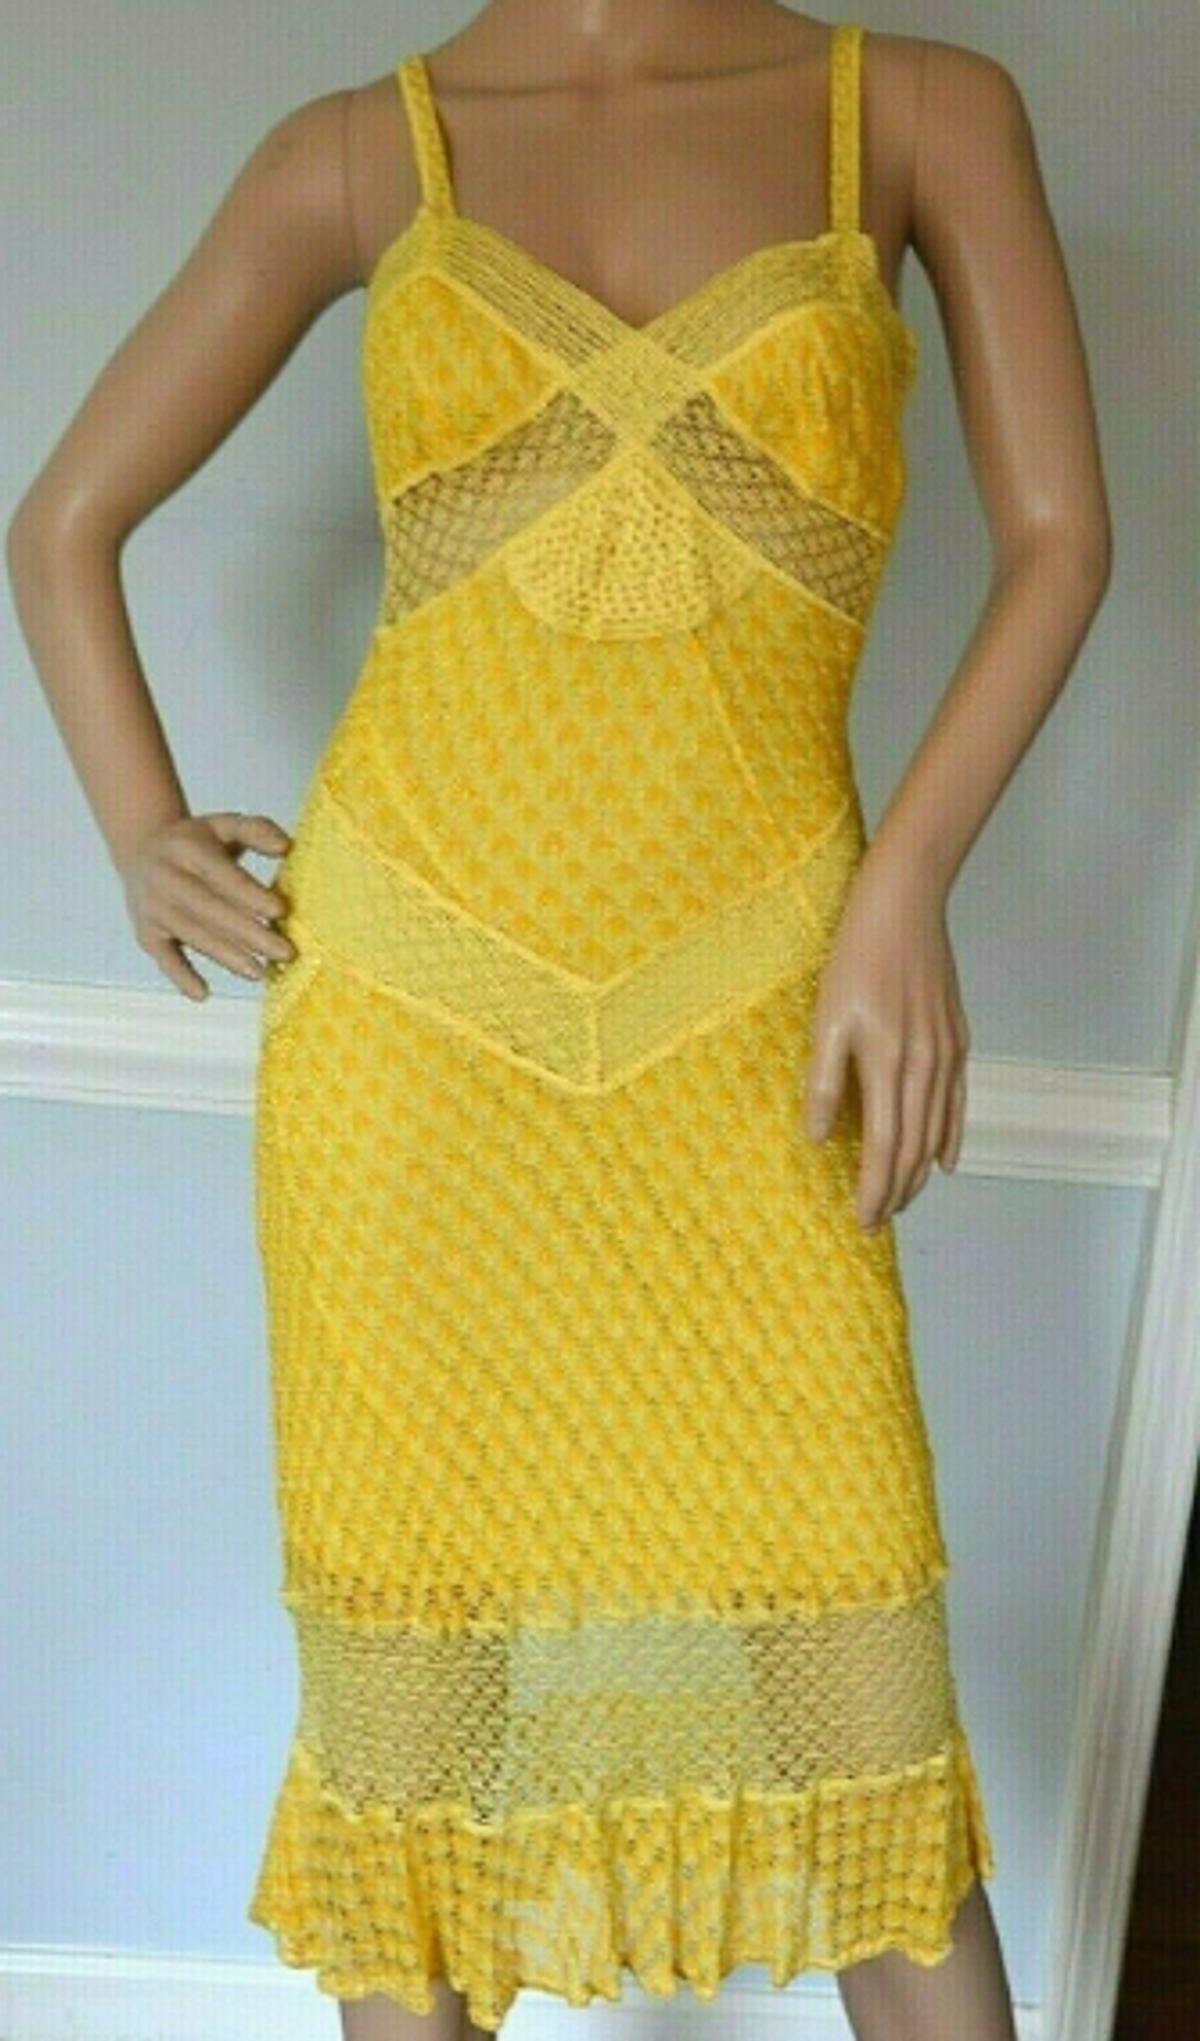 """Missoni Orange Label Embroidered Crochet Sunny Yellow Sun Dress US 2 4 / IT 40 Condition:Used : Seller notes:""""Looks new - beautiful!"""" Size:Italian 40Sleeve Type:Sleeveless Dress Length:Knee LengthSize Type:Regular Department:WomenAccents:Crochet, Embroidered Pattern:EmbroideredStyle:Stretch, Sun Dress Color:YellowMaterial:Rayon Neckline:V-NeckClosure:Zip Occasion:AnySleeve Length:Sleeveless Brand:MissoniUPC:Does not apply"""